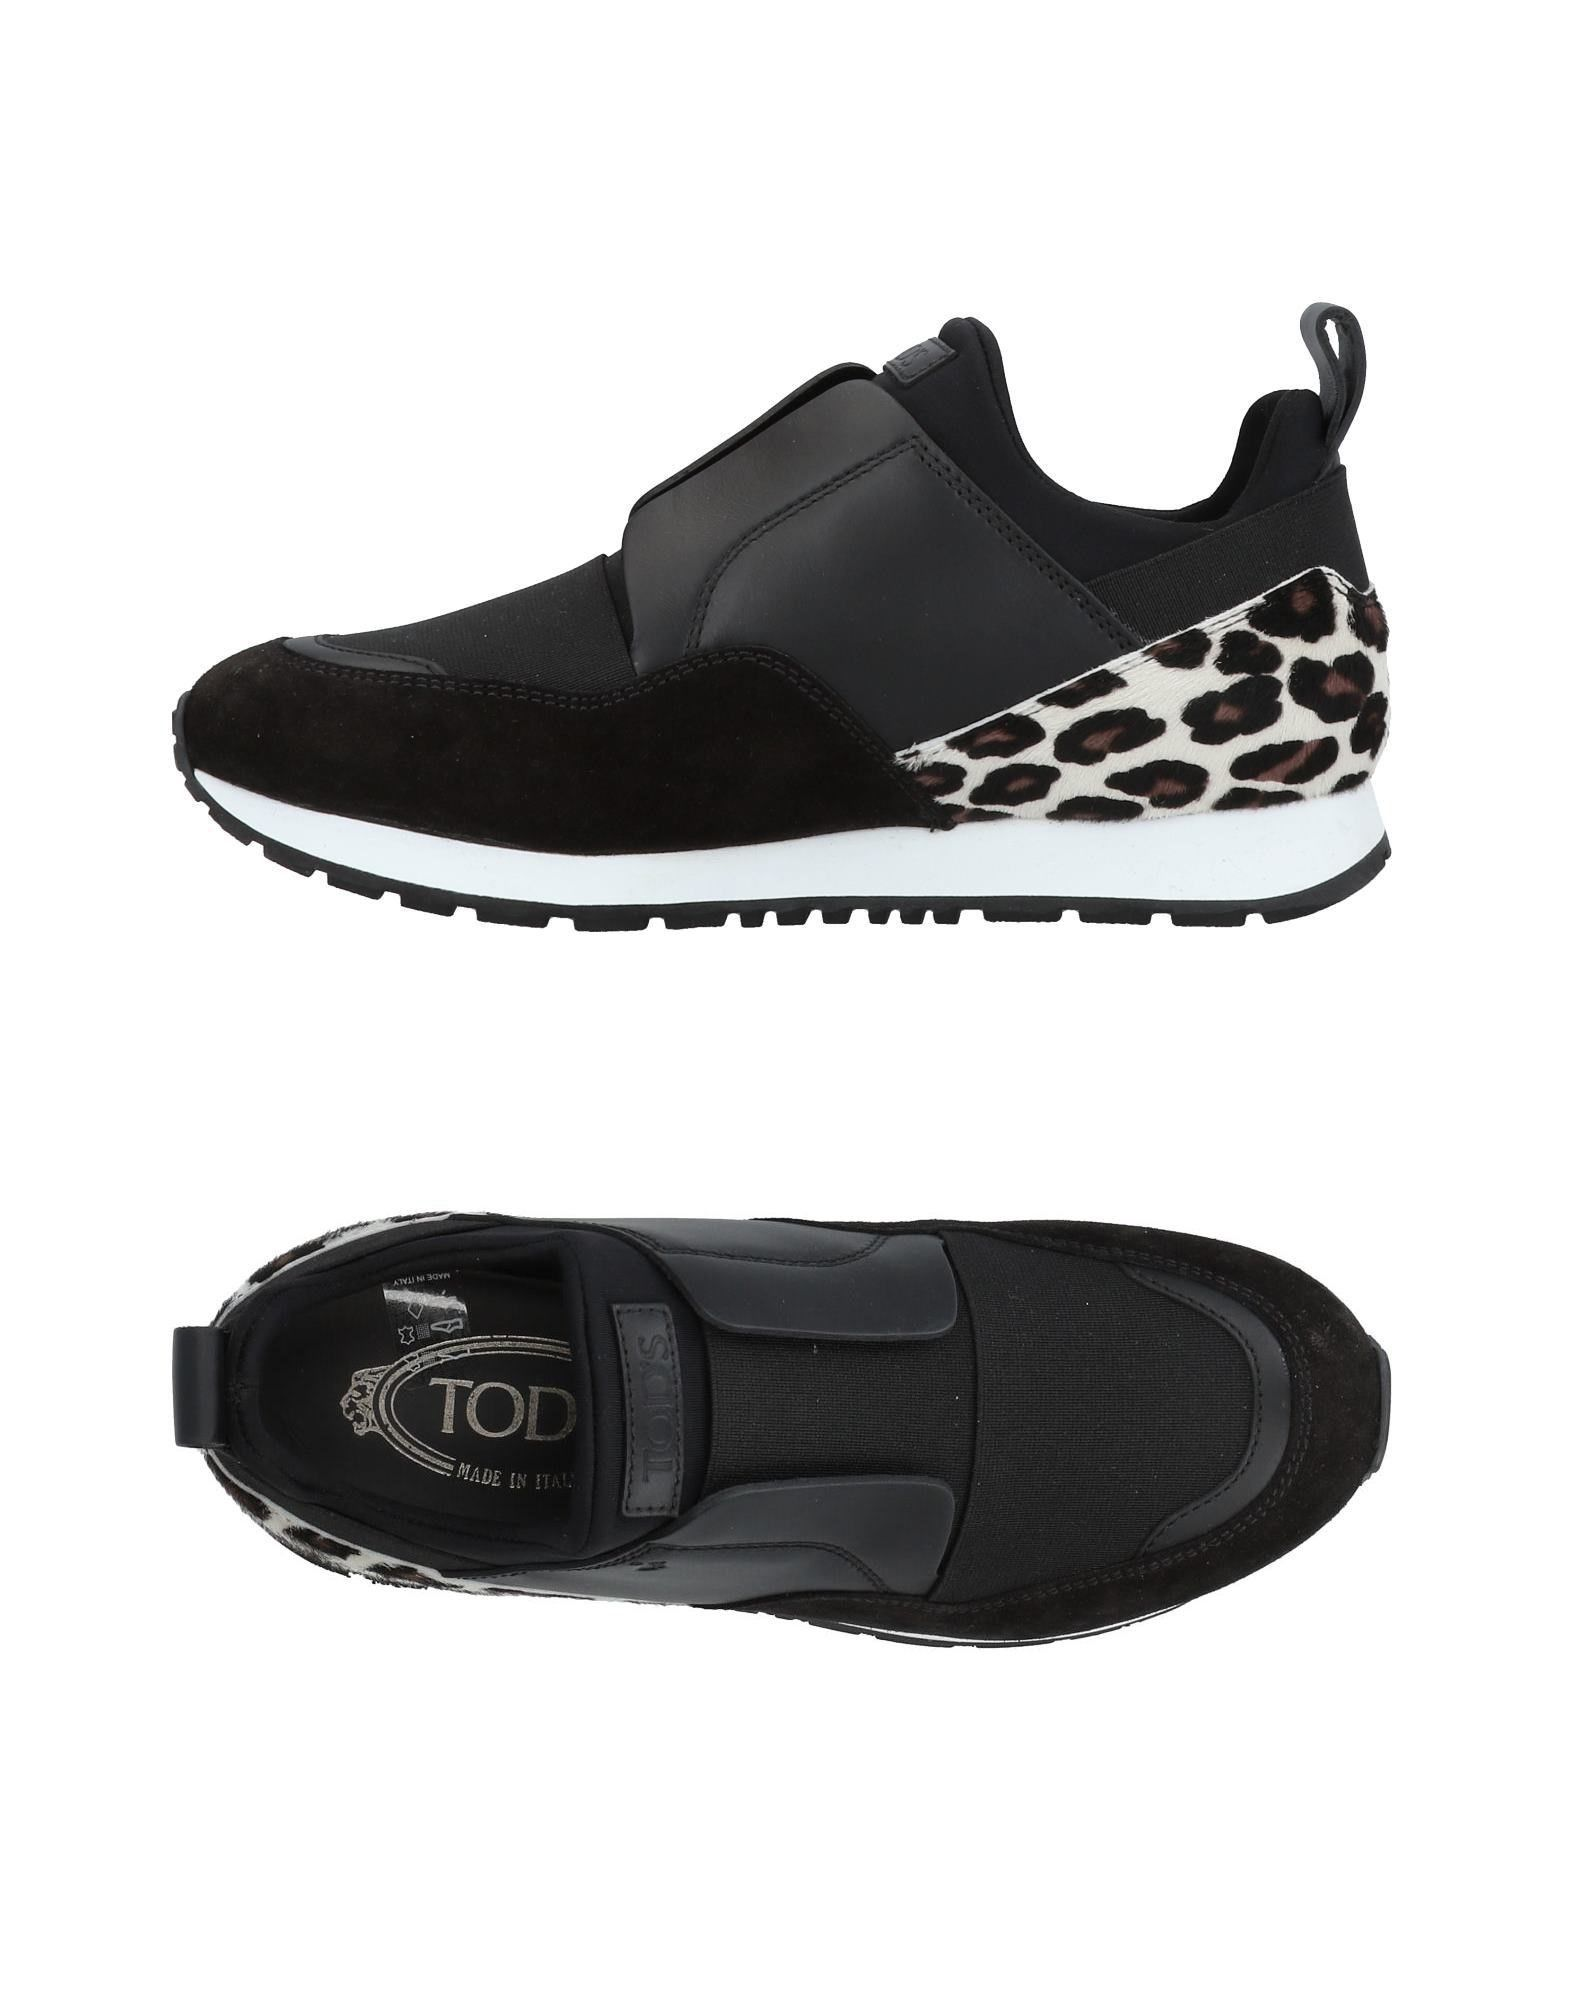 A buon mercato Sneakers Tod's Donna - 11429889OH